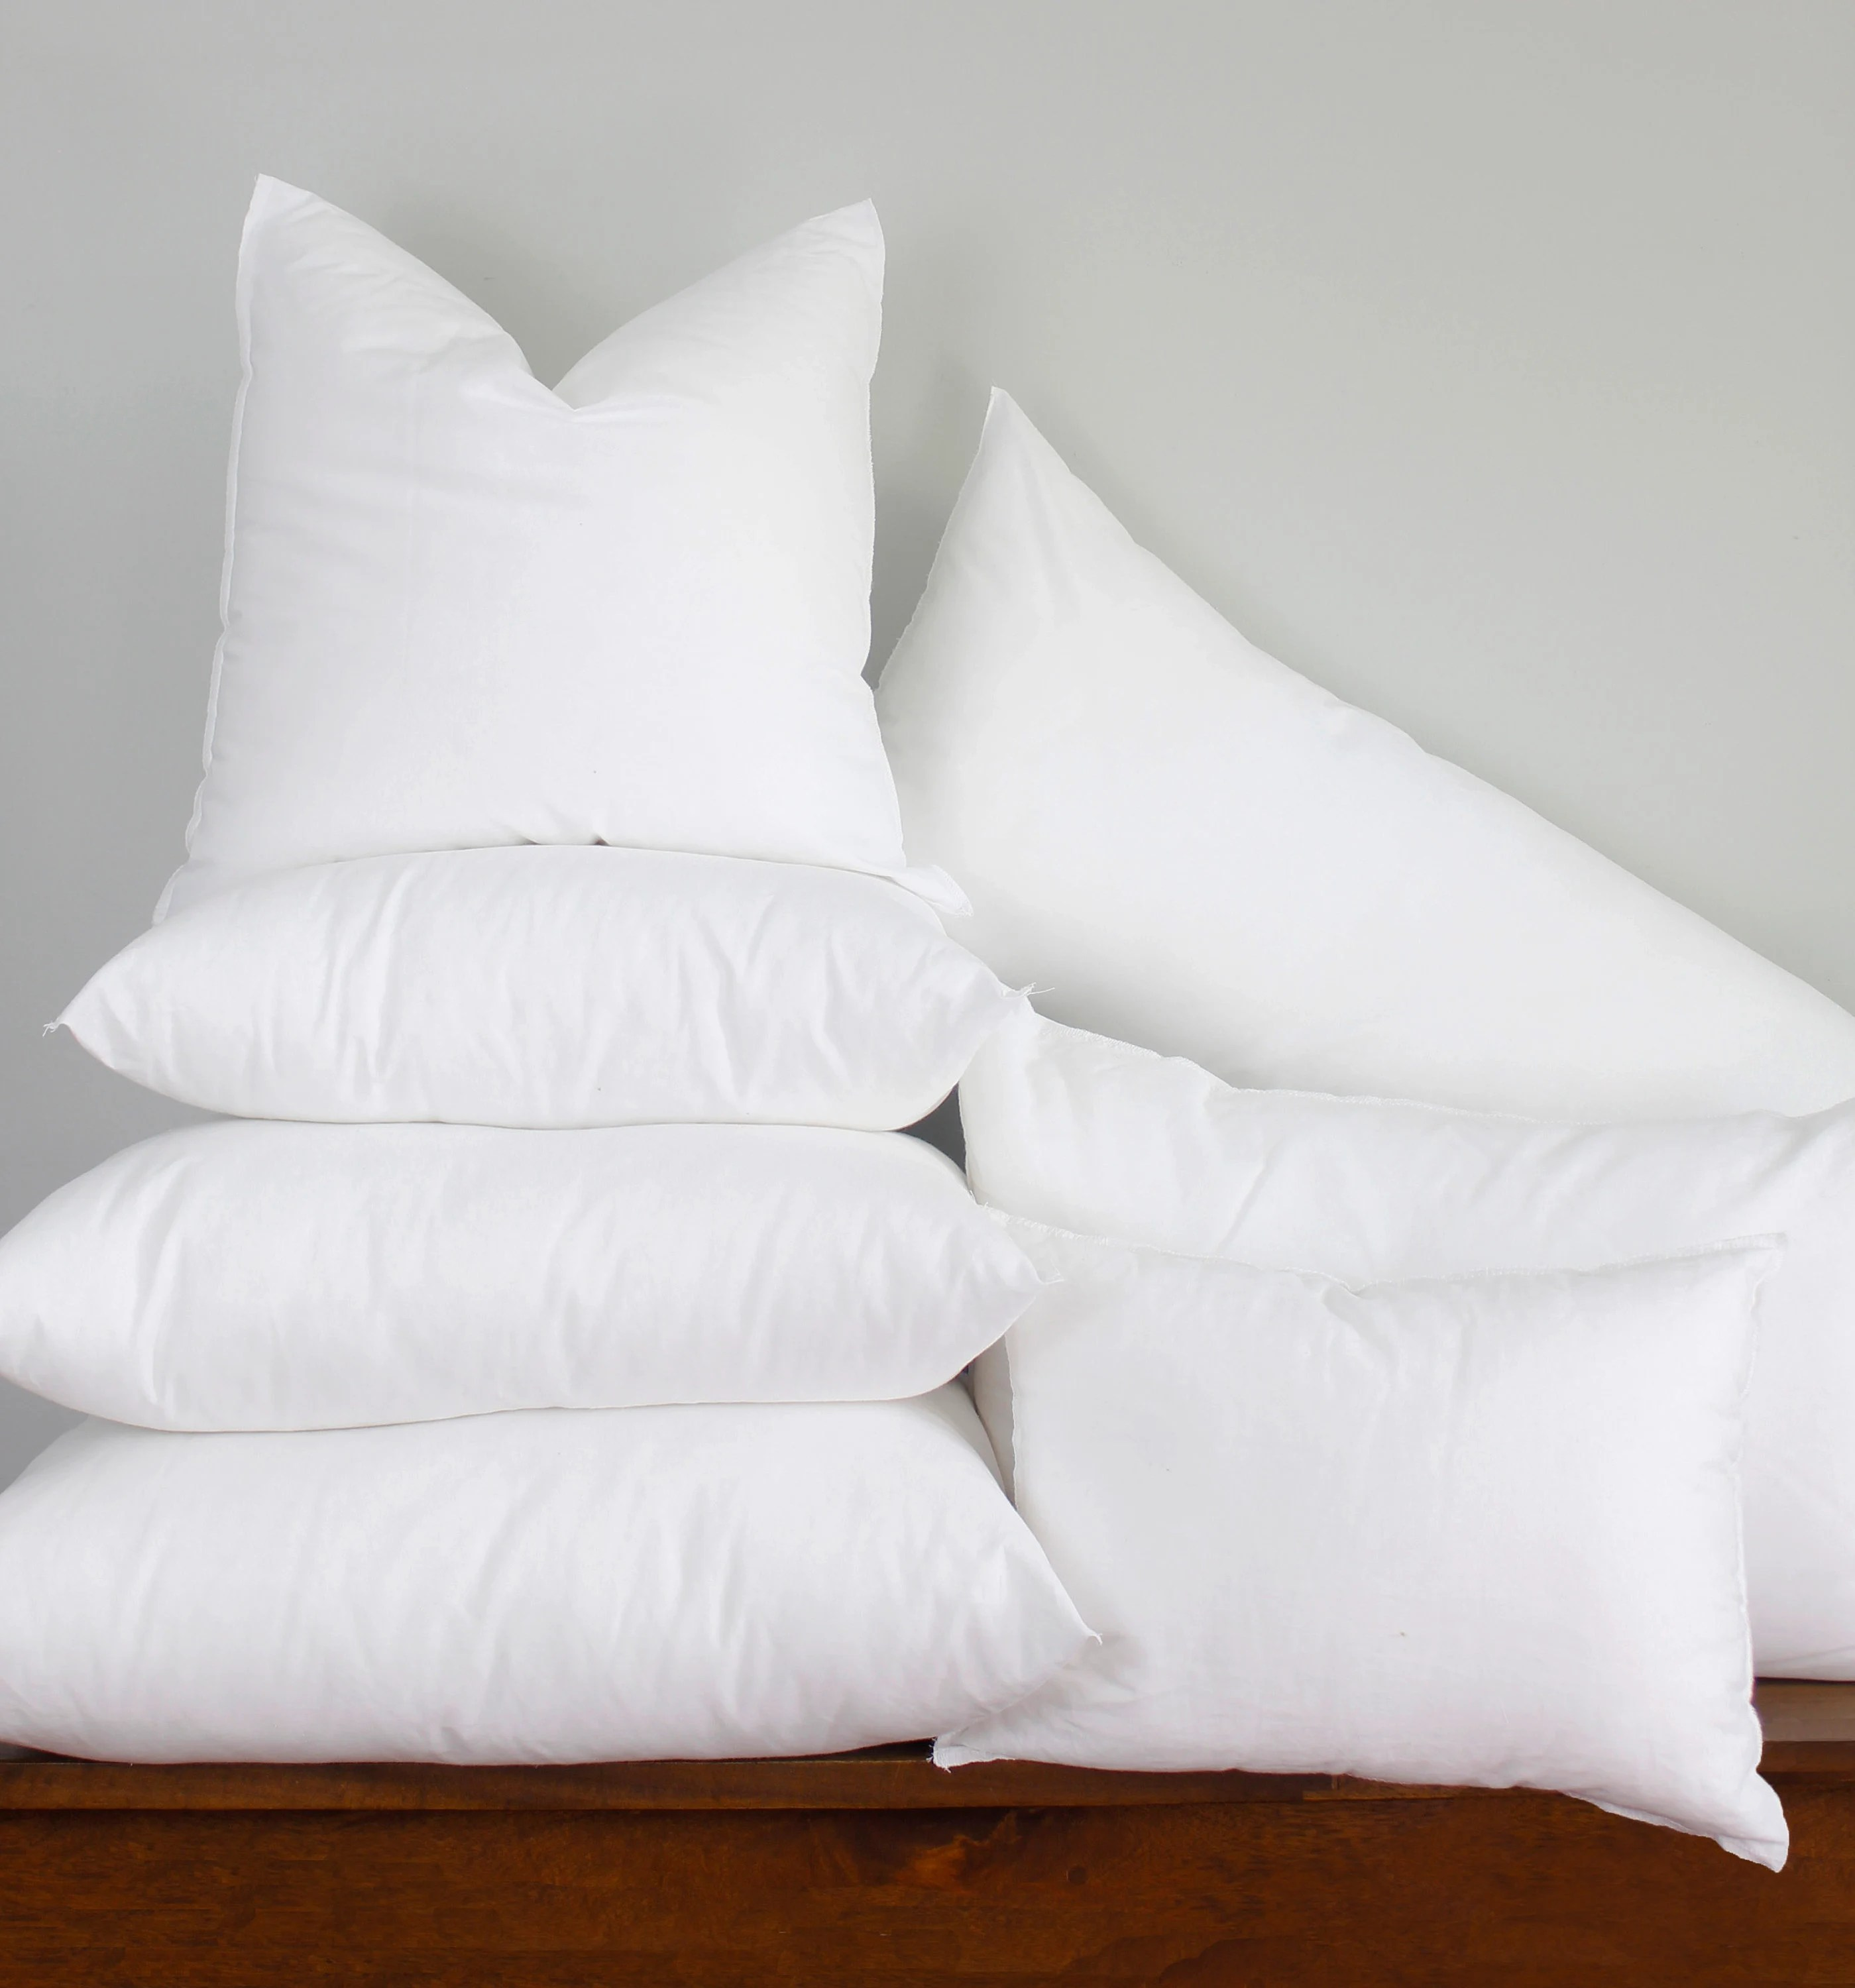 21x27 synthetic down pillow form insert